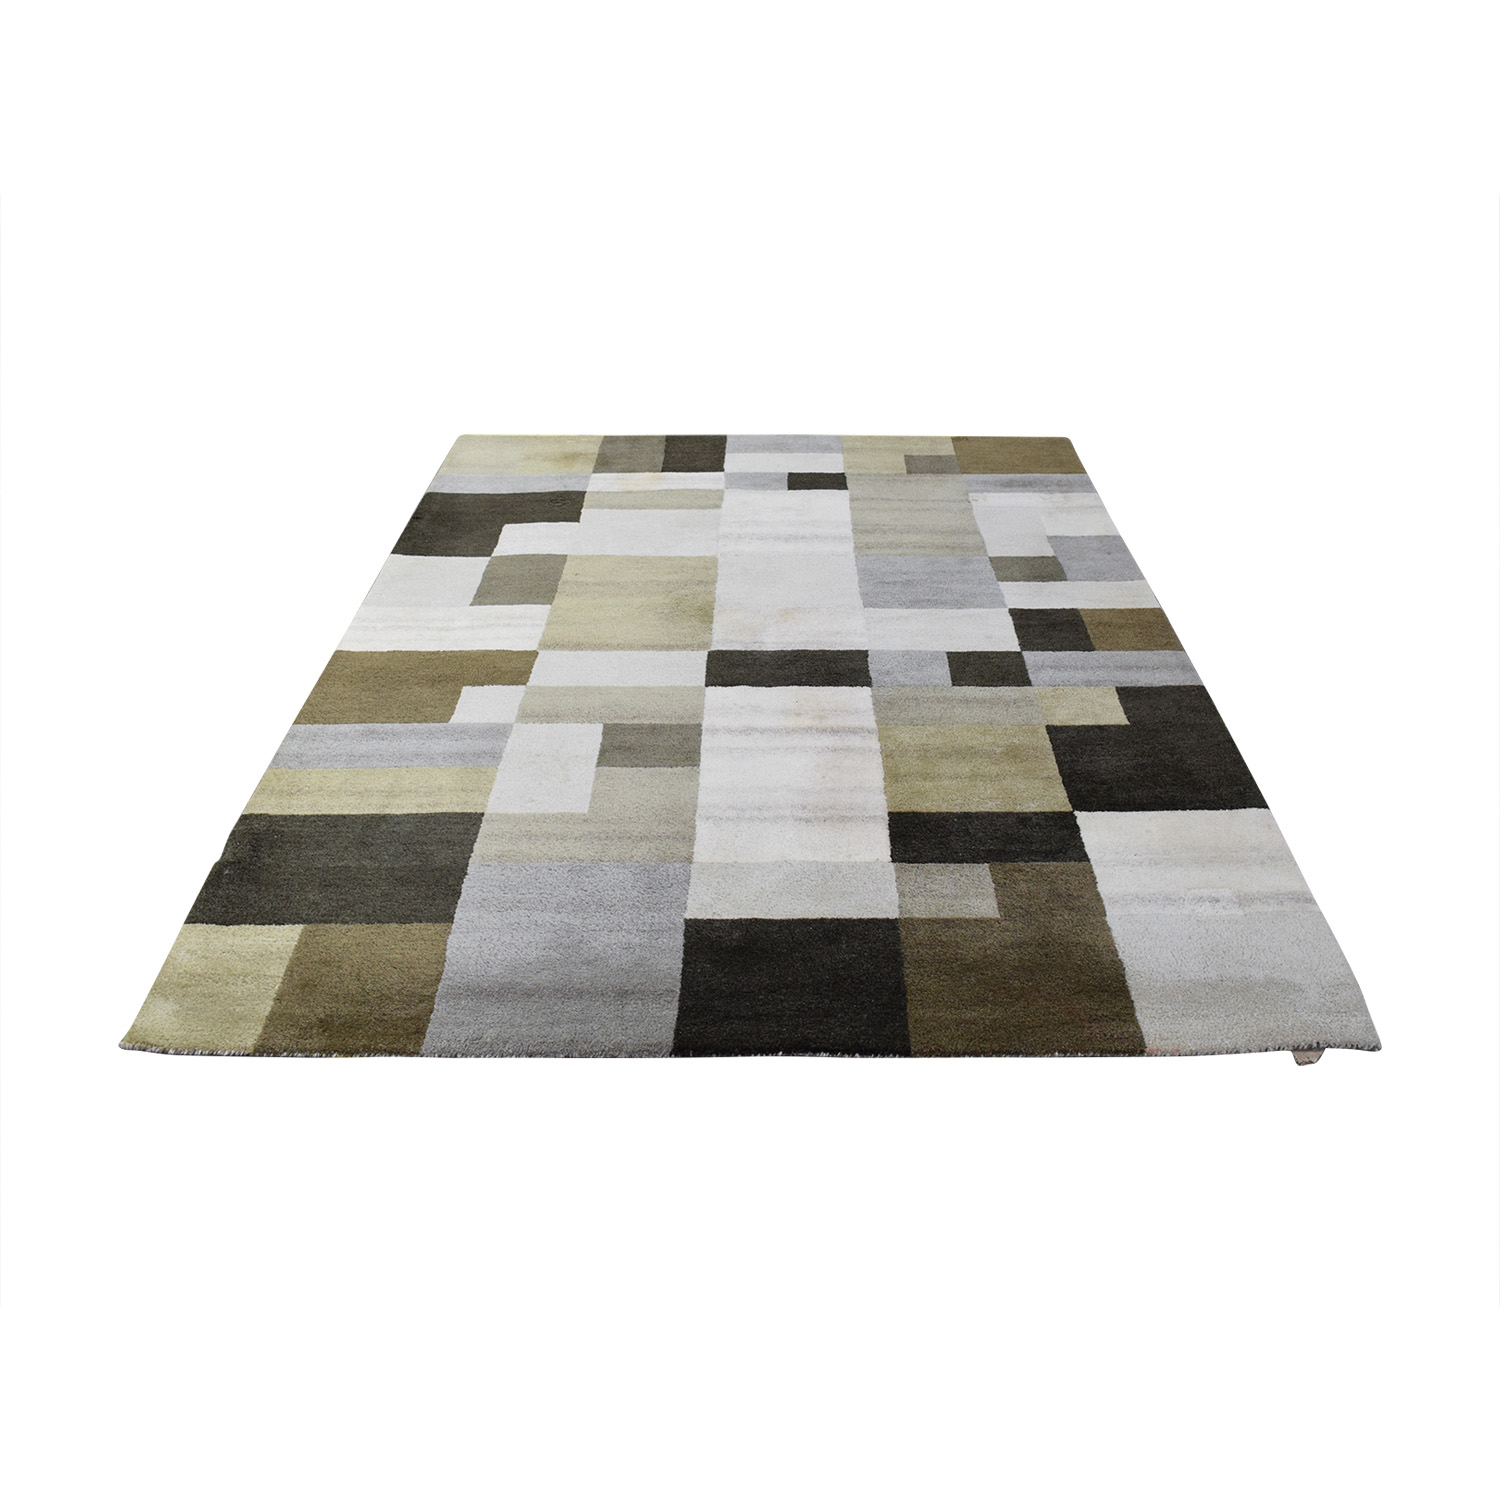 Crate & Barrel Crate &  Barrel Denali Rug nj